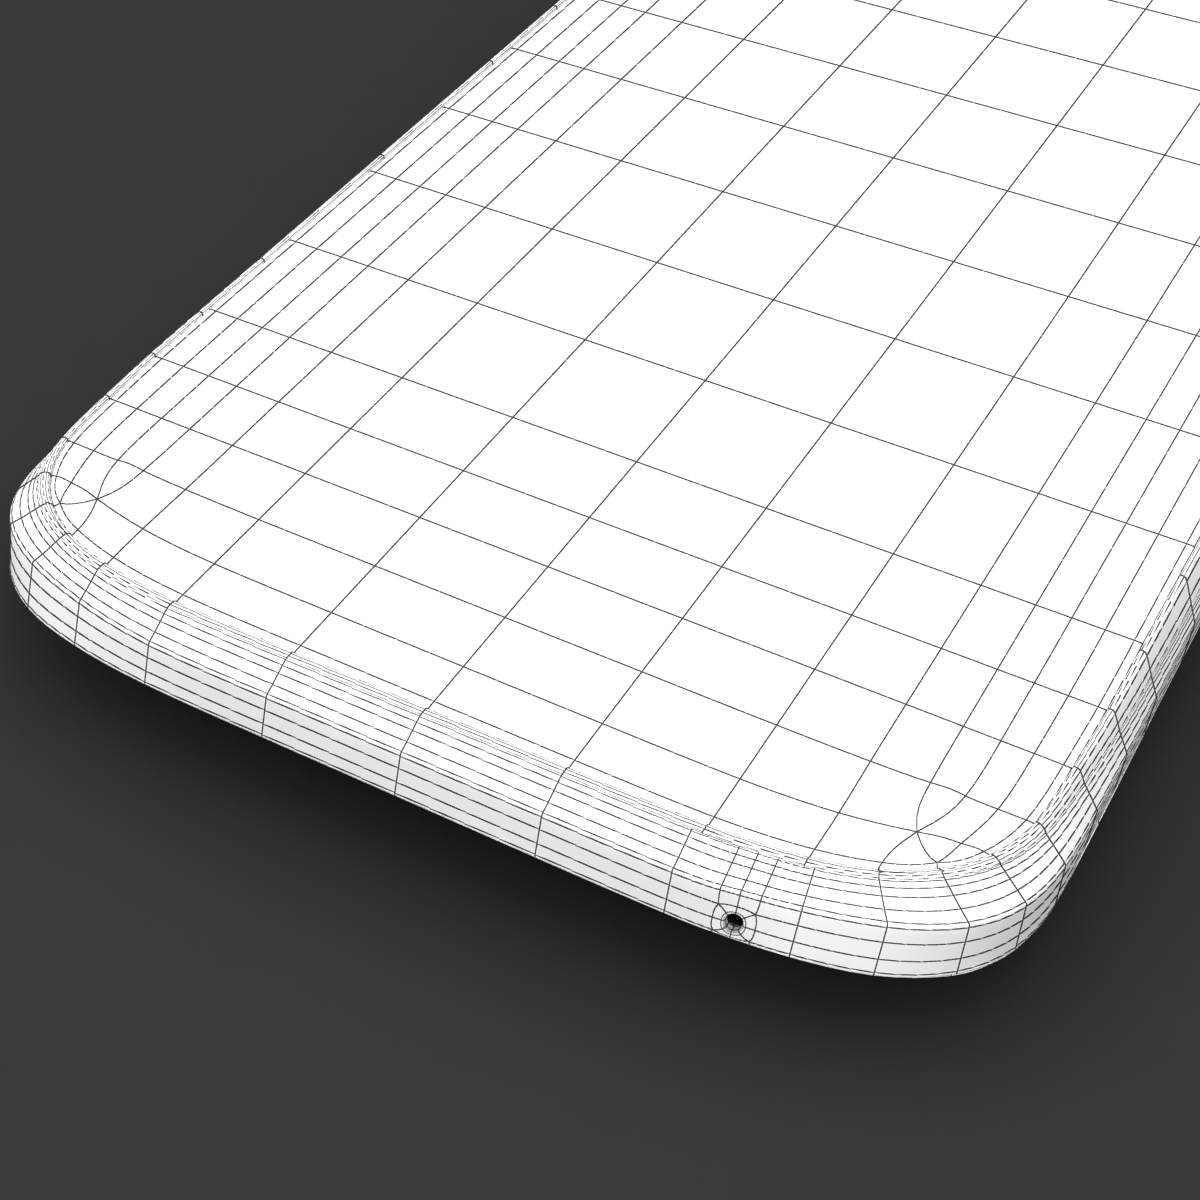 htc one x+ black and white 3d model 3ds max fbx c4d lwo obj 151476